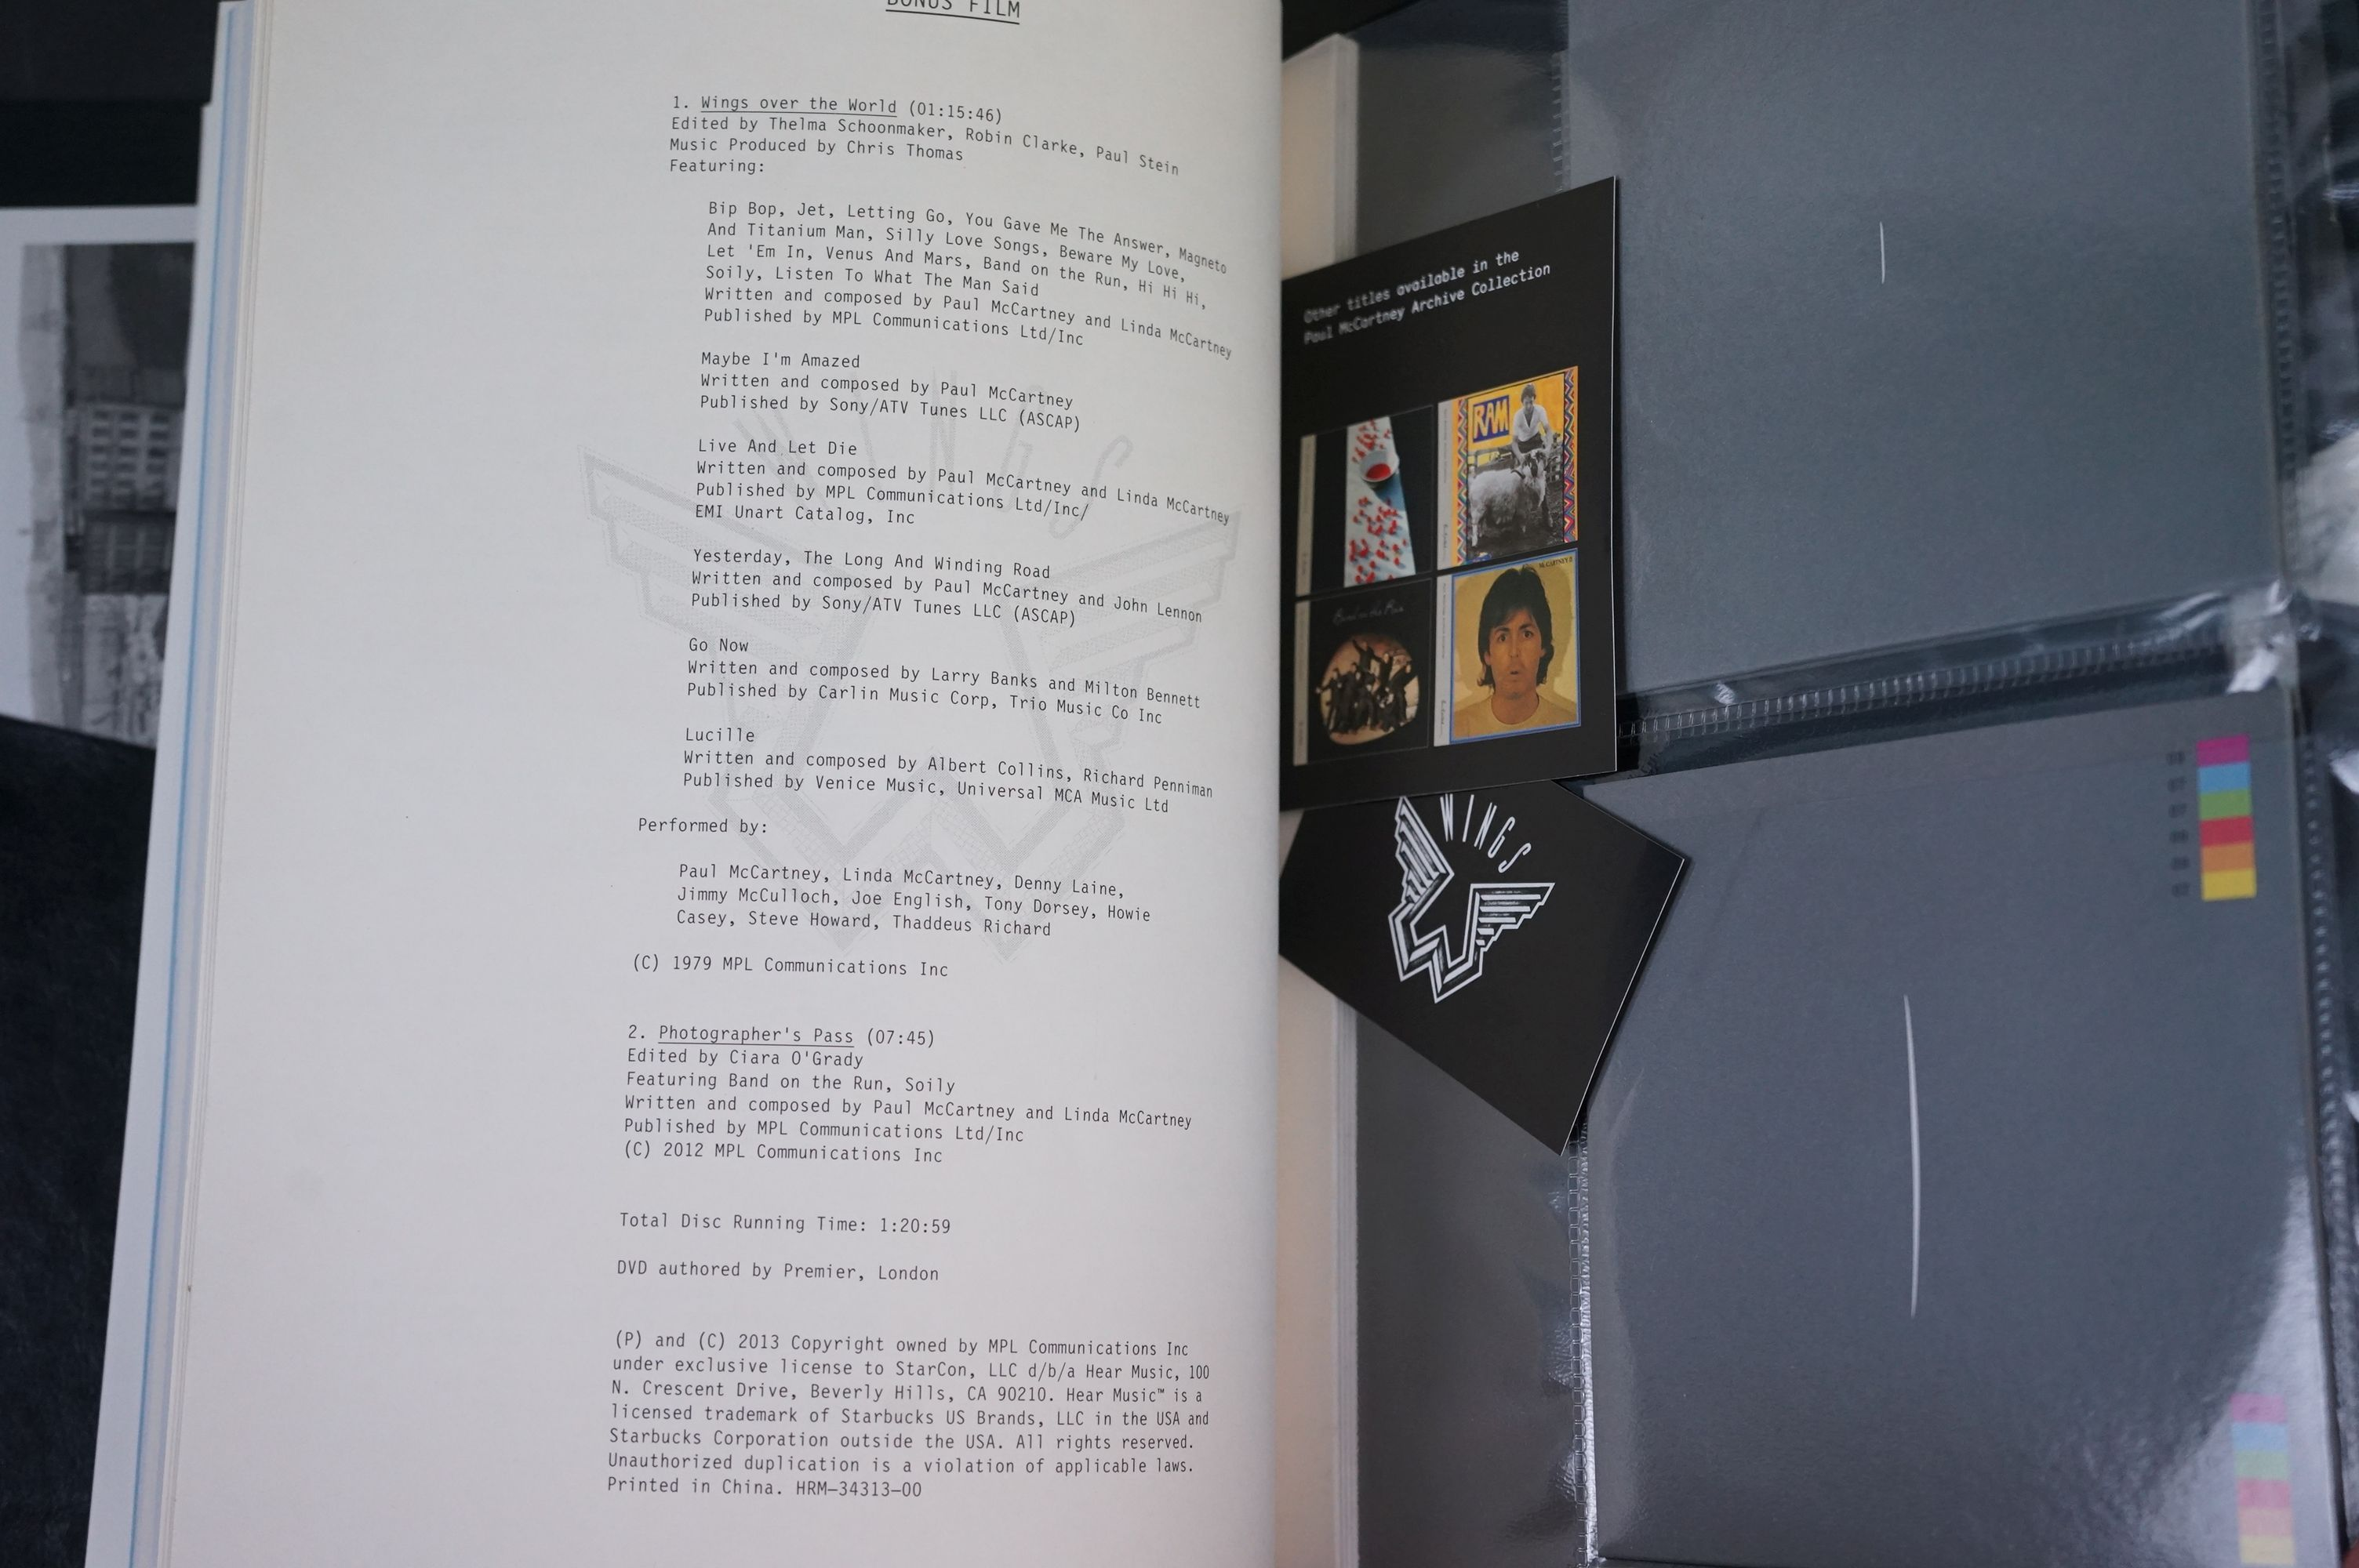 Box Set - Paul McCartney & Wings - Wings Over America numbered box set (03555) deluxe box set, ex - Image 5 of 18